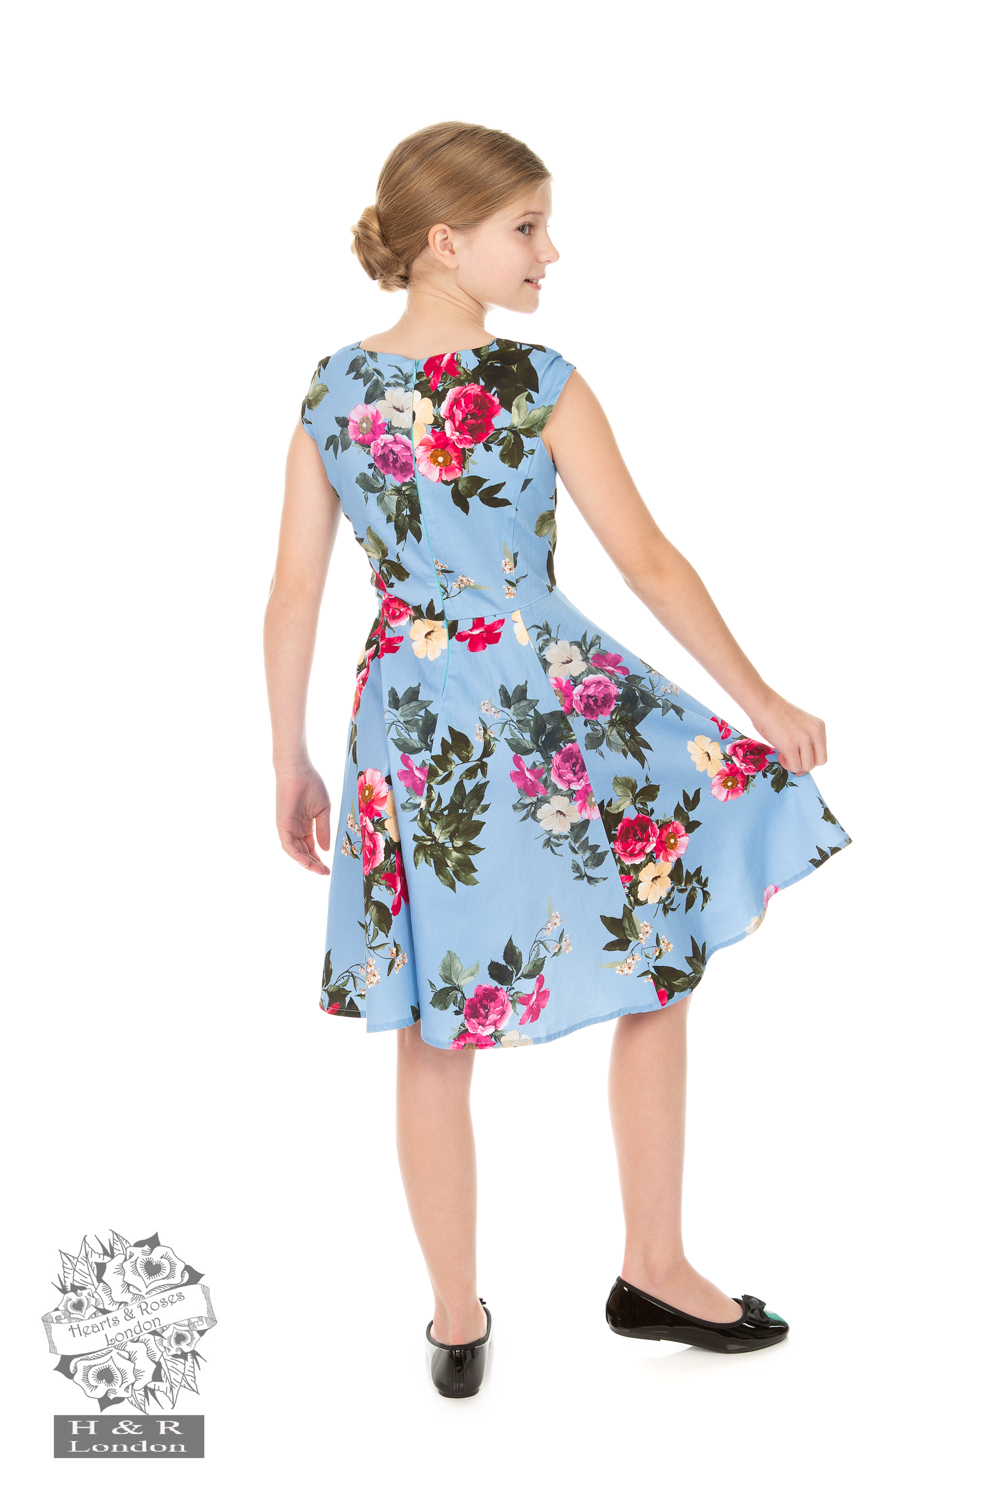 Girls Jolene Floral Swing Dress